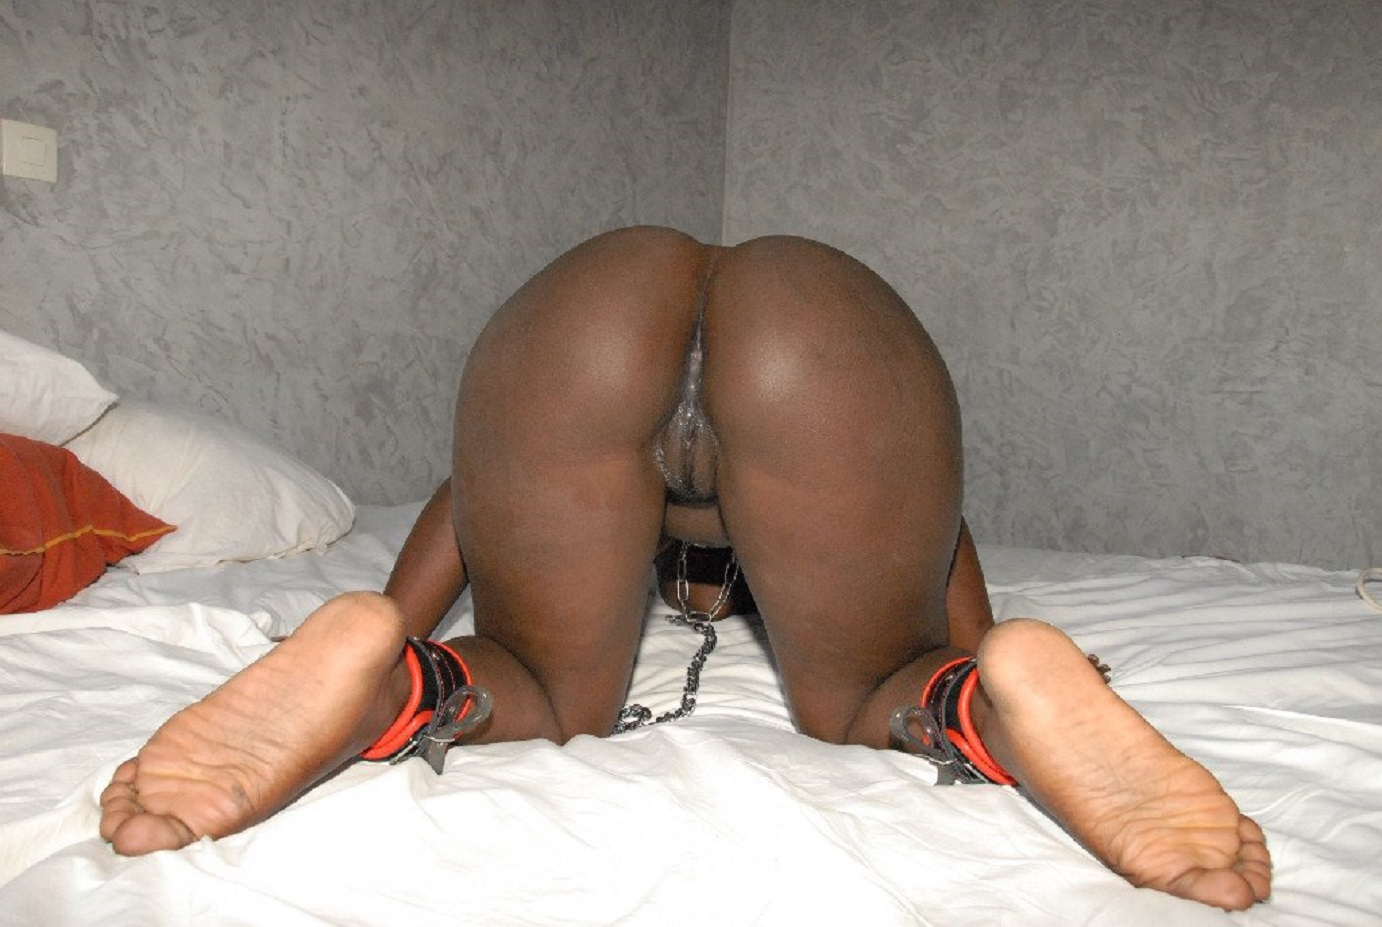 Black slave porn bd pic nsfw galleries